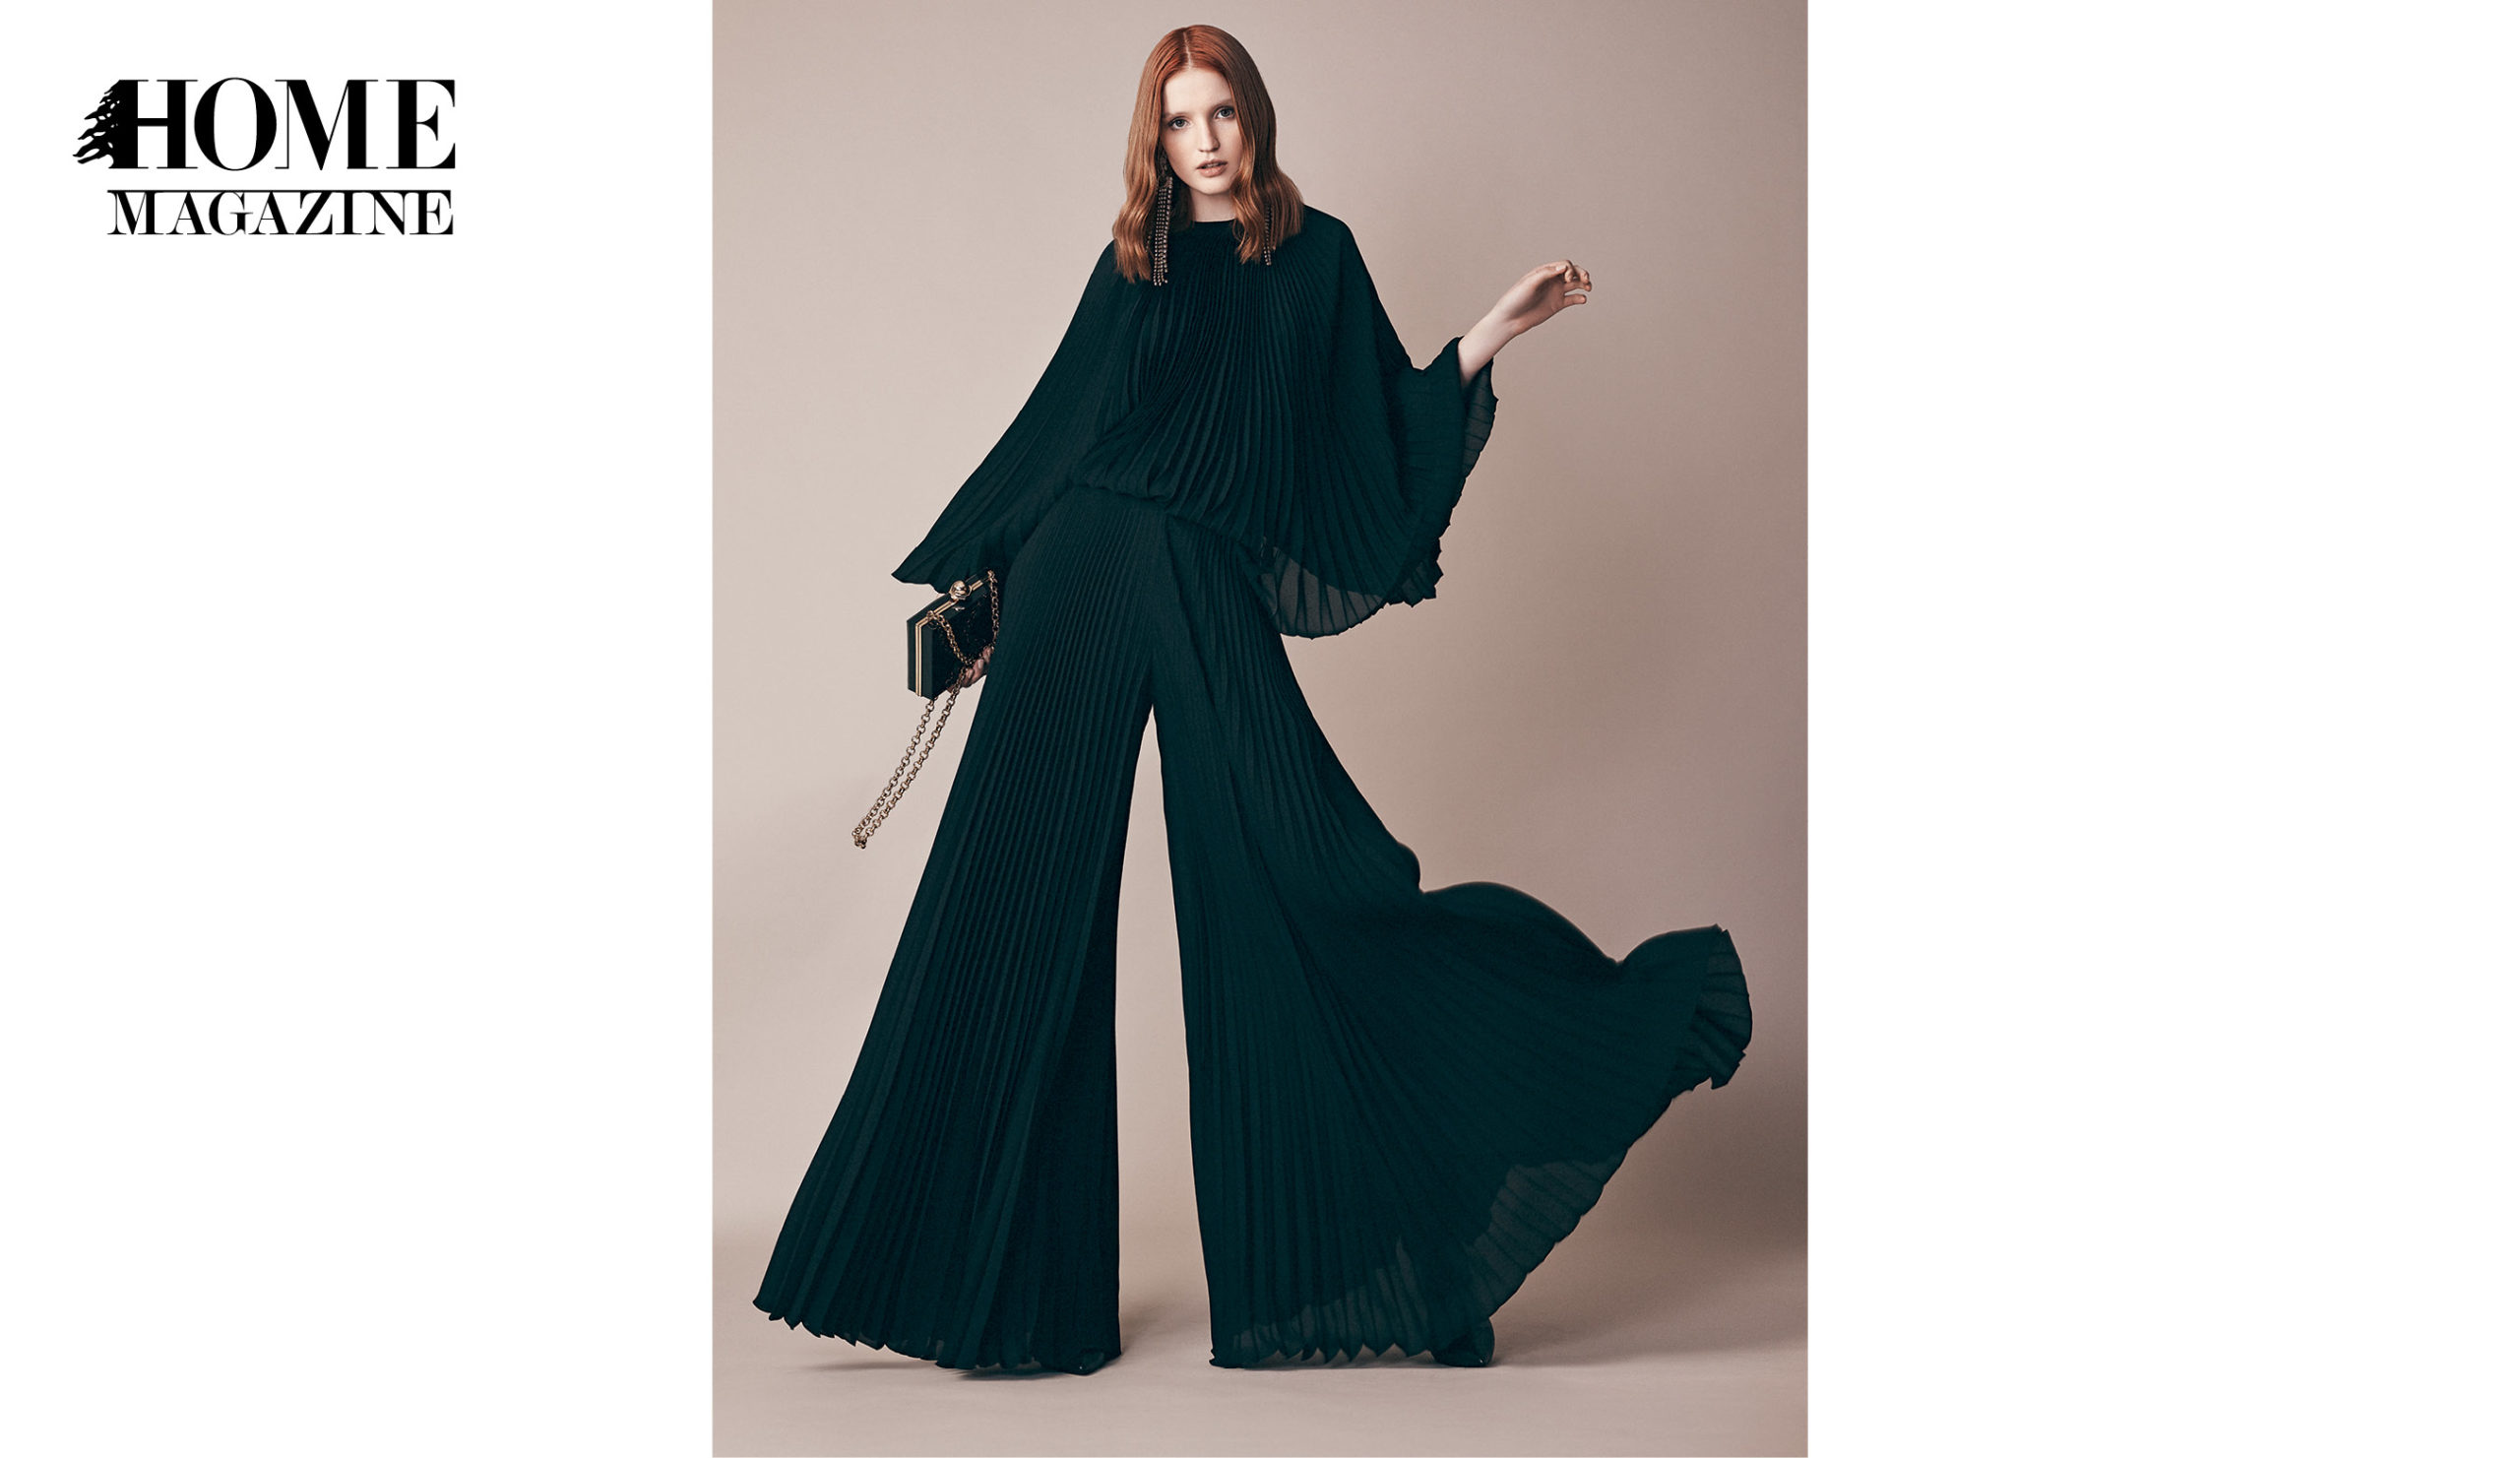 Model wearing black attire with flared trousers